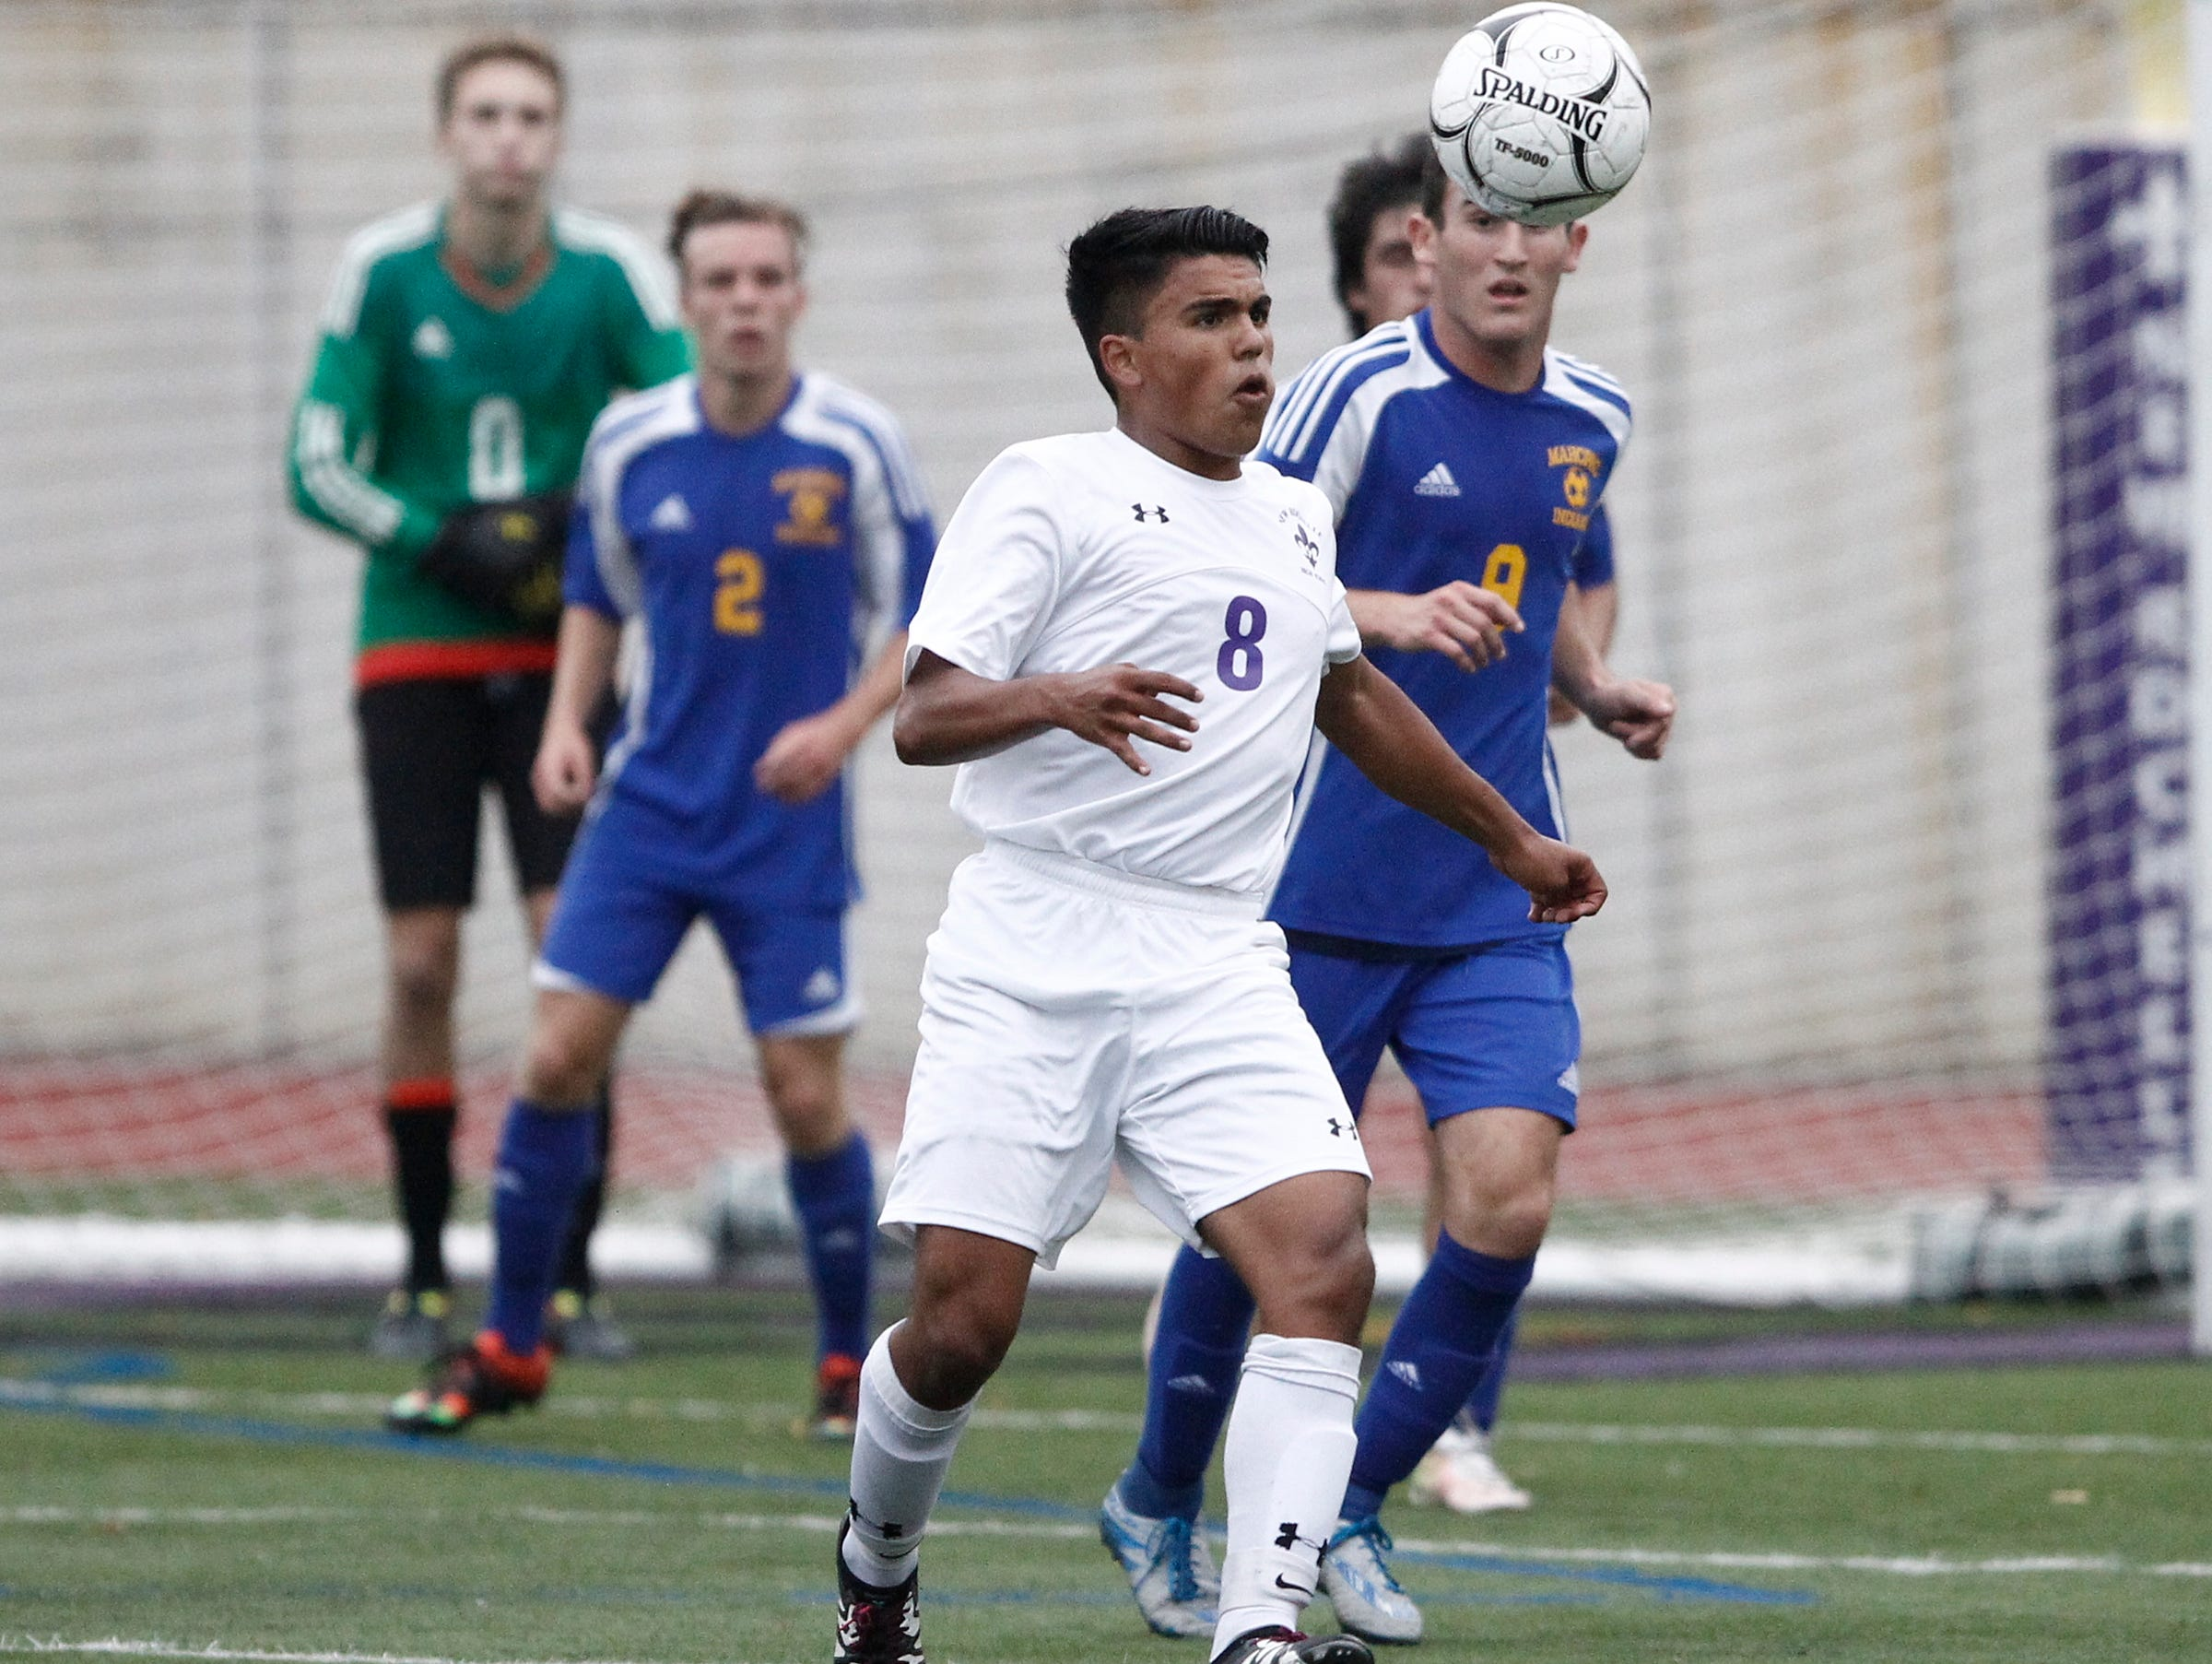 New Rochelle's Omar Espinoza (8) works to control the ball as Mahopac's Max Lichtman (9) defends during the boys soccer Class AA first round at New Rochelle High School in New Rochelle on Thursday, October 20, 2016. New Rochelle advances with their 2-0 win.